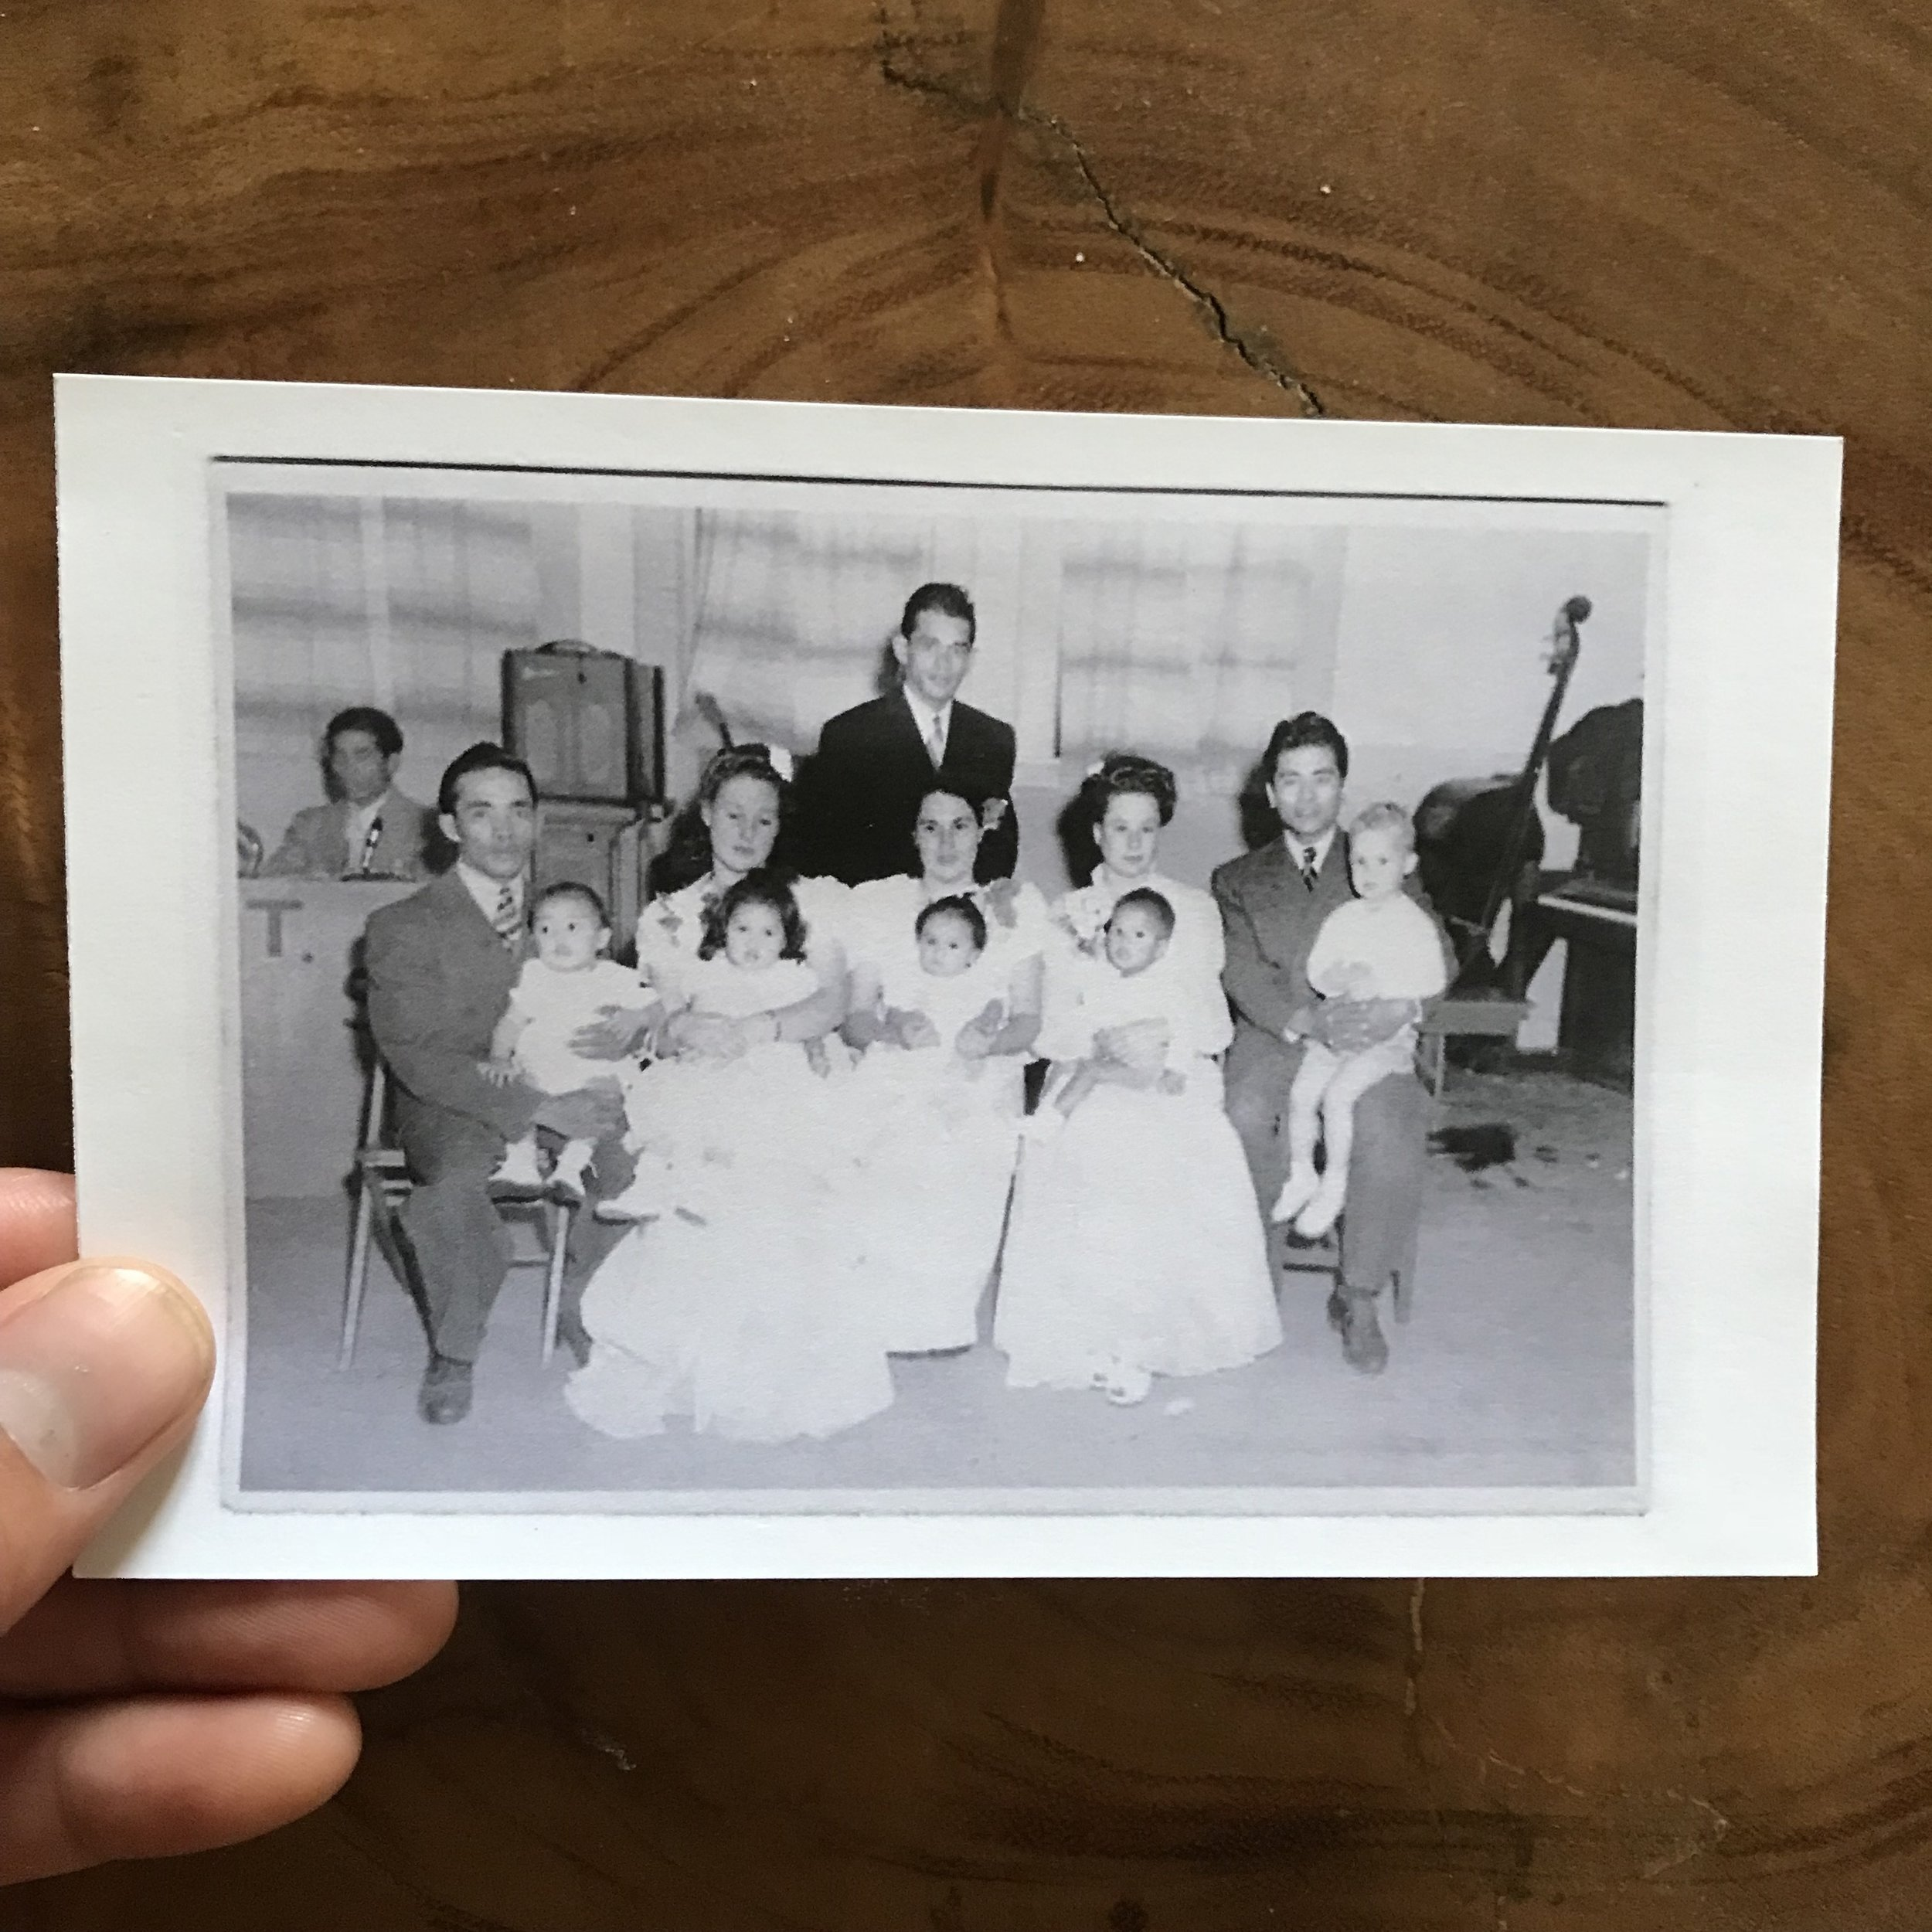 Vintage photo of Filipino annual reunion in Santa Maria, CA, circa 1950s.  Father (center) with his first wife (American,) holding my oldest sibling, Nora — who, to this day, I have never met. My uncles (left, Manong Leon and Uncle Henry, right) are to either side of my father with their American wives and mestizo children.  All this American wives talk sounds like Filipino men were stealing all the women from white men, haha. Context: during the wave of migration of Filipinos in America (1930's-1950's), only men were allowed to migrate for labor. The only option for Filipino men to find love was outside of their own race, due to Filipinas immigrating to America much later.  Take a look at how well dressed everyone is! My dad never left the house without a suit. Suave AF. I like to hark back on this time, where live music, note the double bass in the background, and dancing the cha cha was the norm. I wonder what it was like for the Asian men and masculinity within their community. I wonder what the American wives club was like at these events? I'm sure these women didn't speak Visayan (the Filipino dialect my family speaks). So many questions and not many answers, just my imagination to fill in the blanks. This oral / photo history project is a quest to mend those gaps in my disjointed historical narrative.